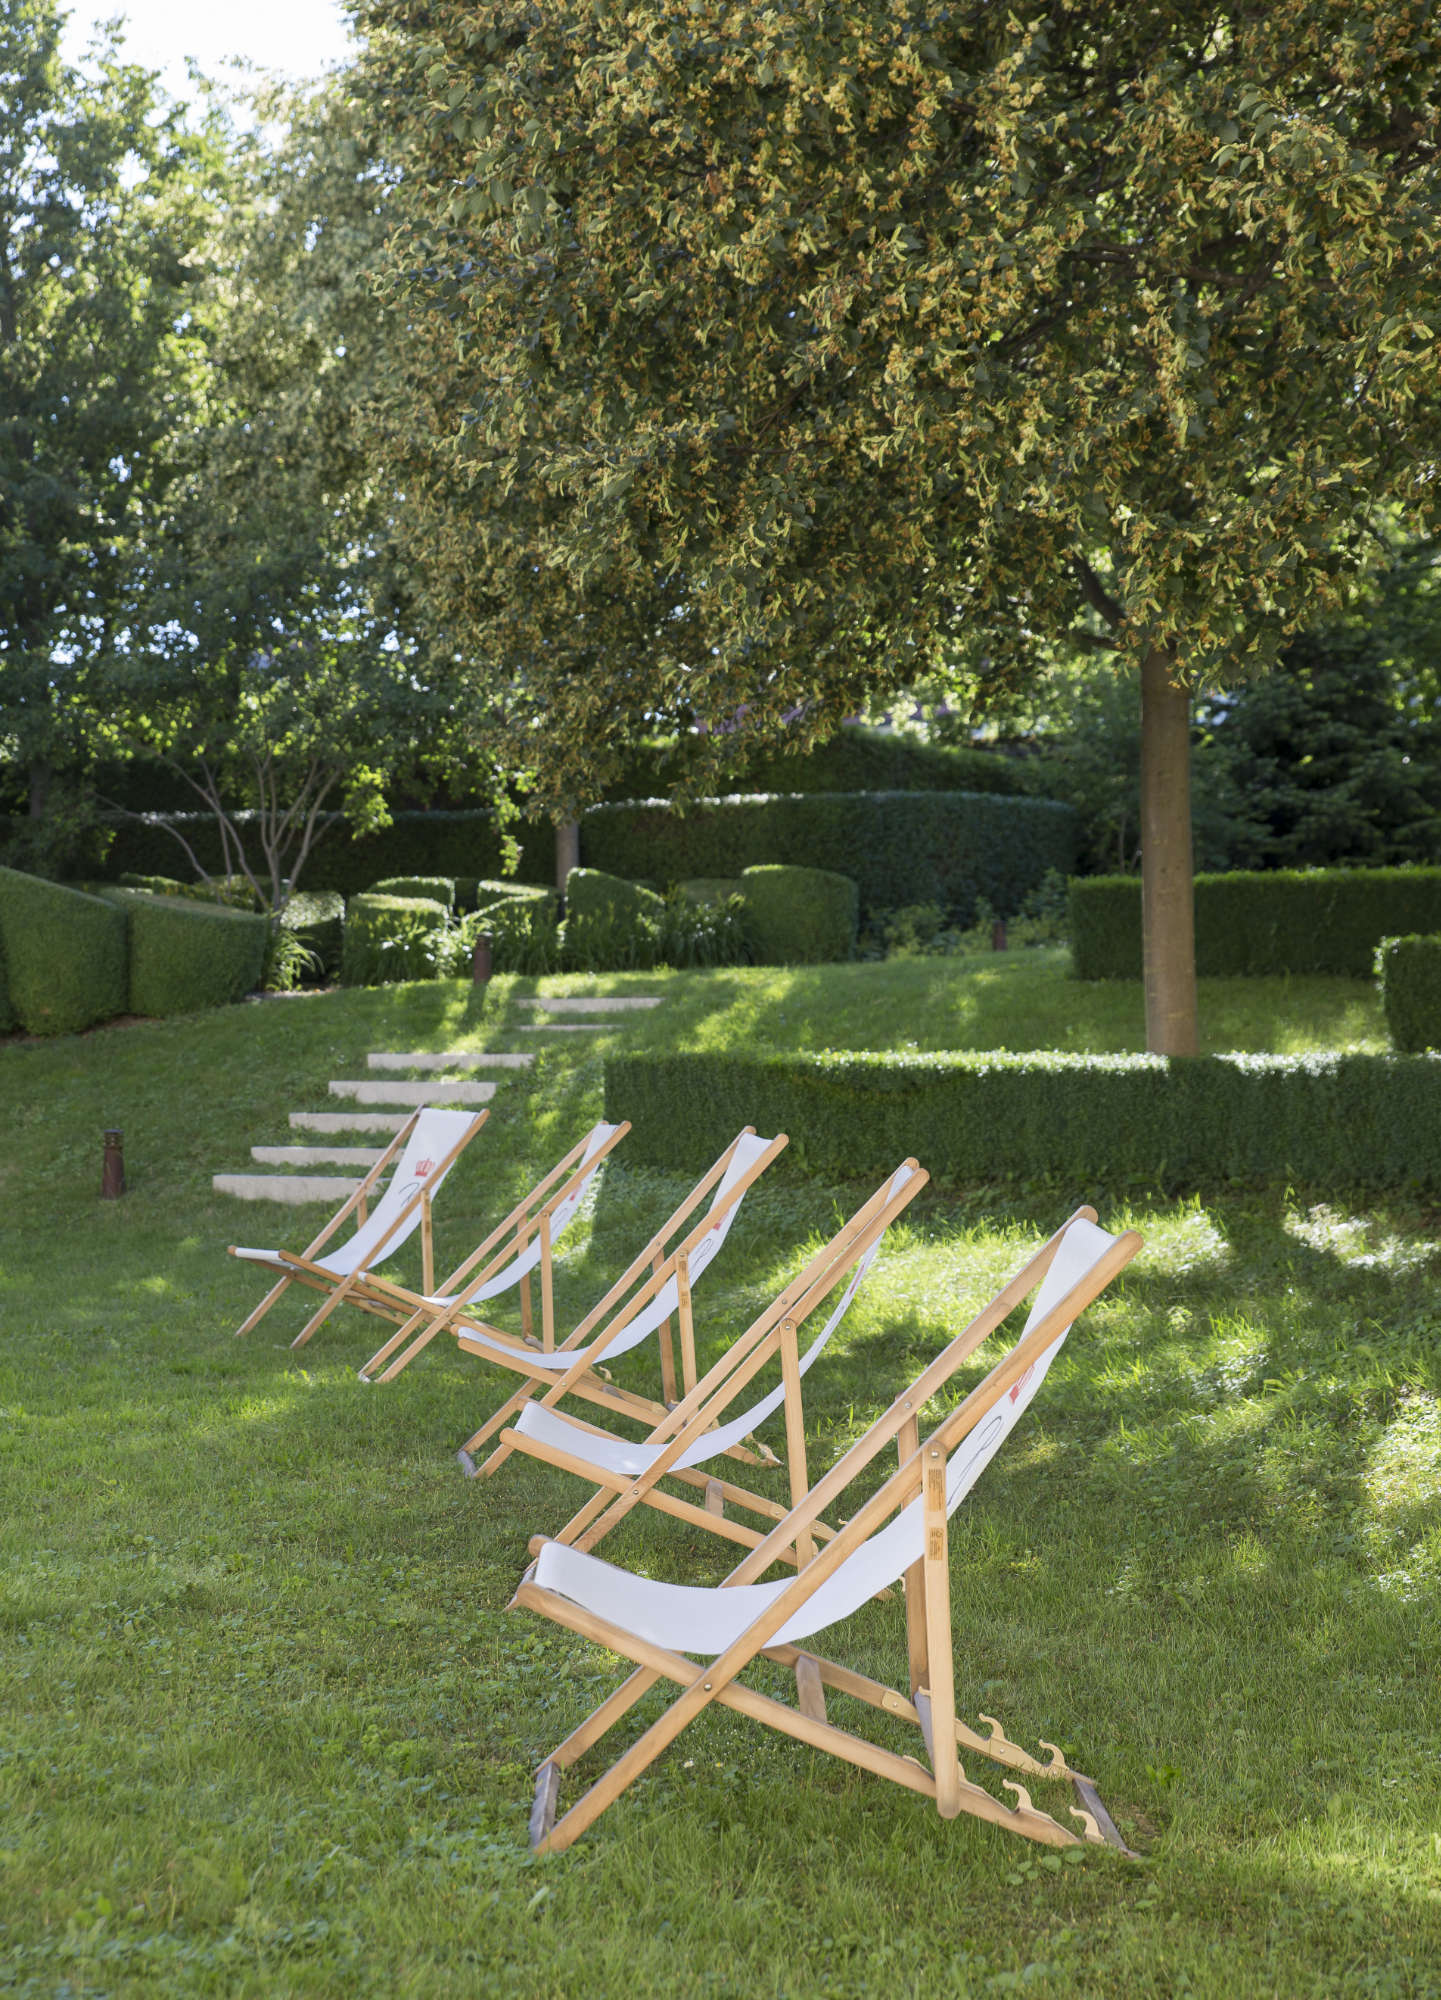 Folding deckchairs for meetings in the hotel garden